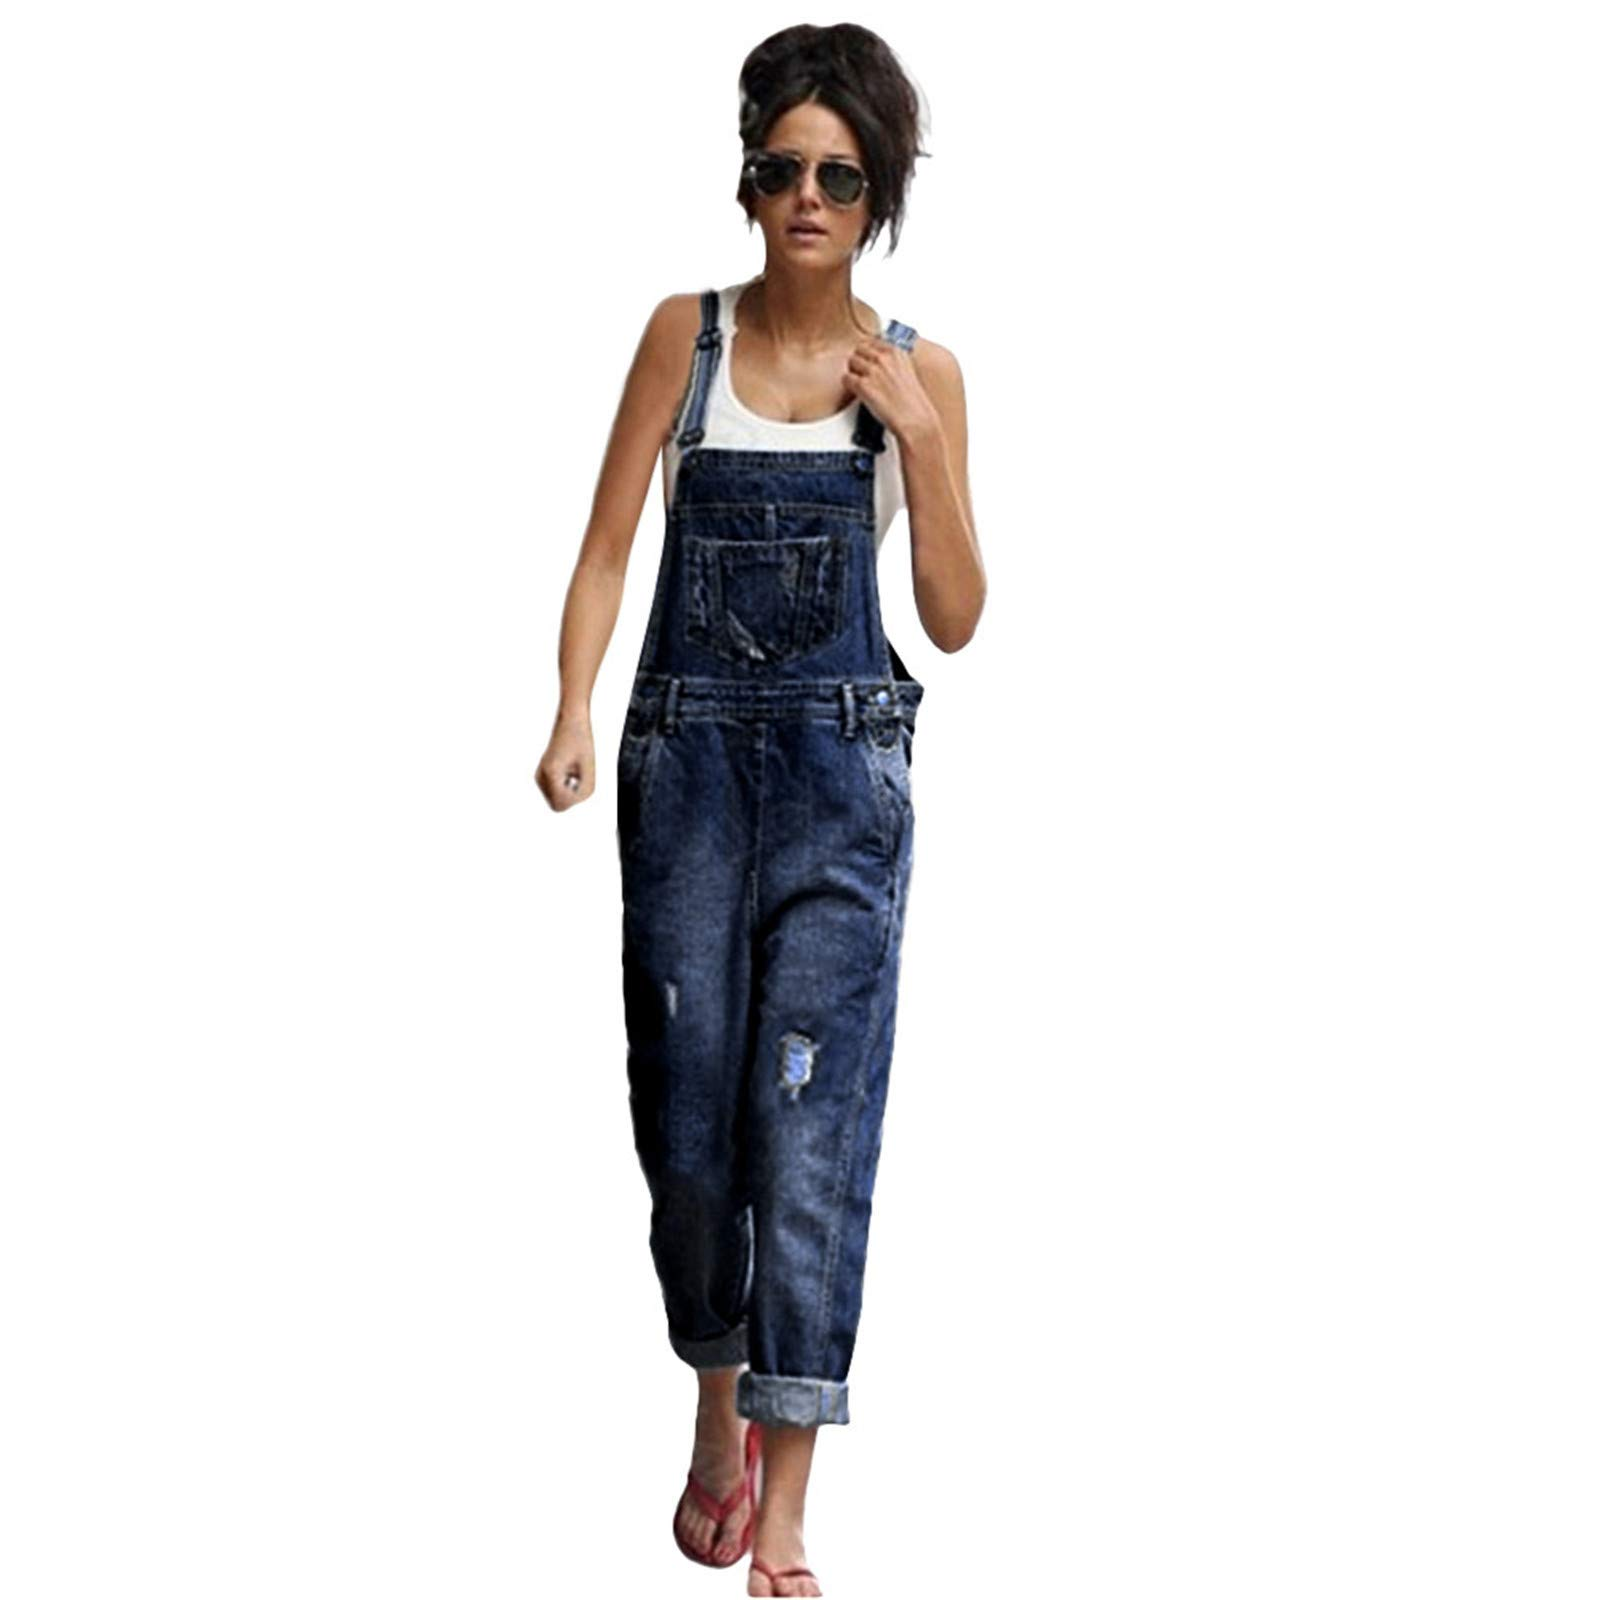 Thenxin Women Vintage Denim Bib Overalls with Pocket Casual Wash Blue Straight Leg Jeans for Juniors(Blue,S)